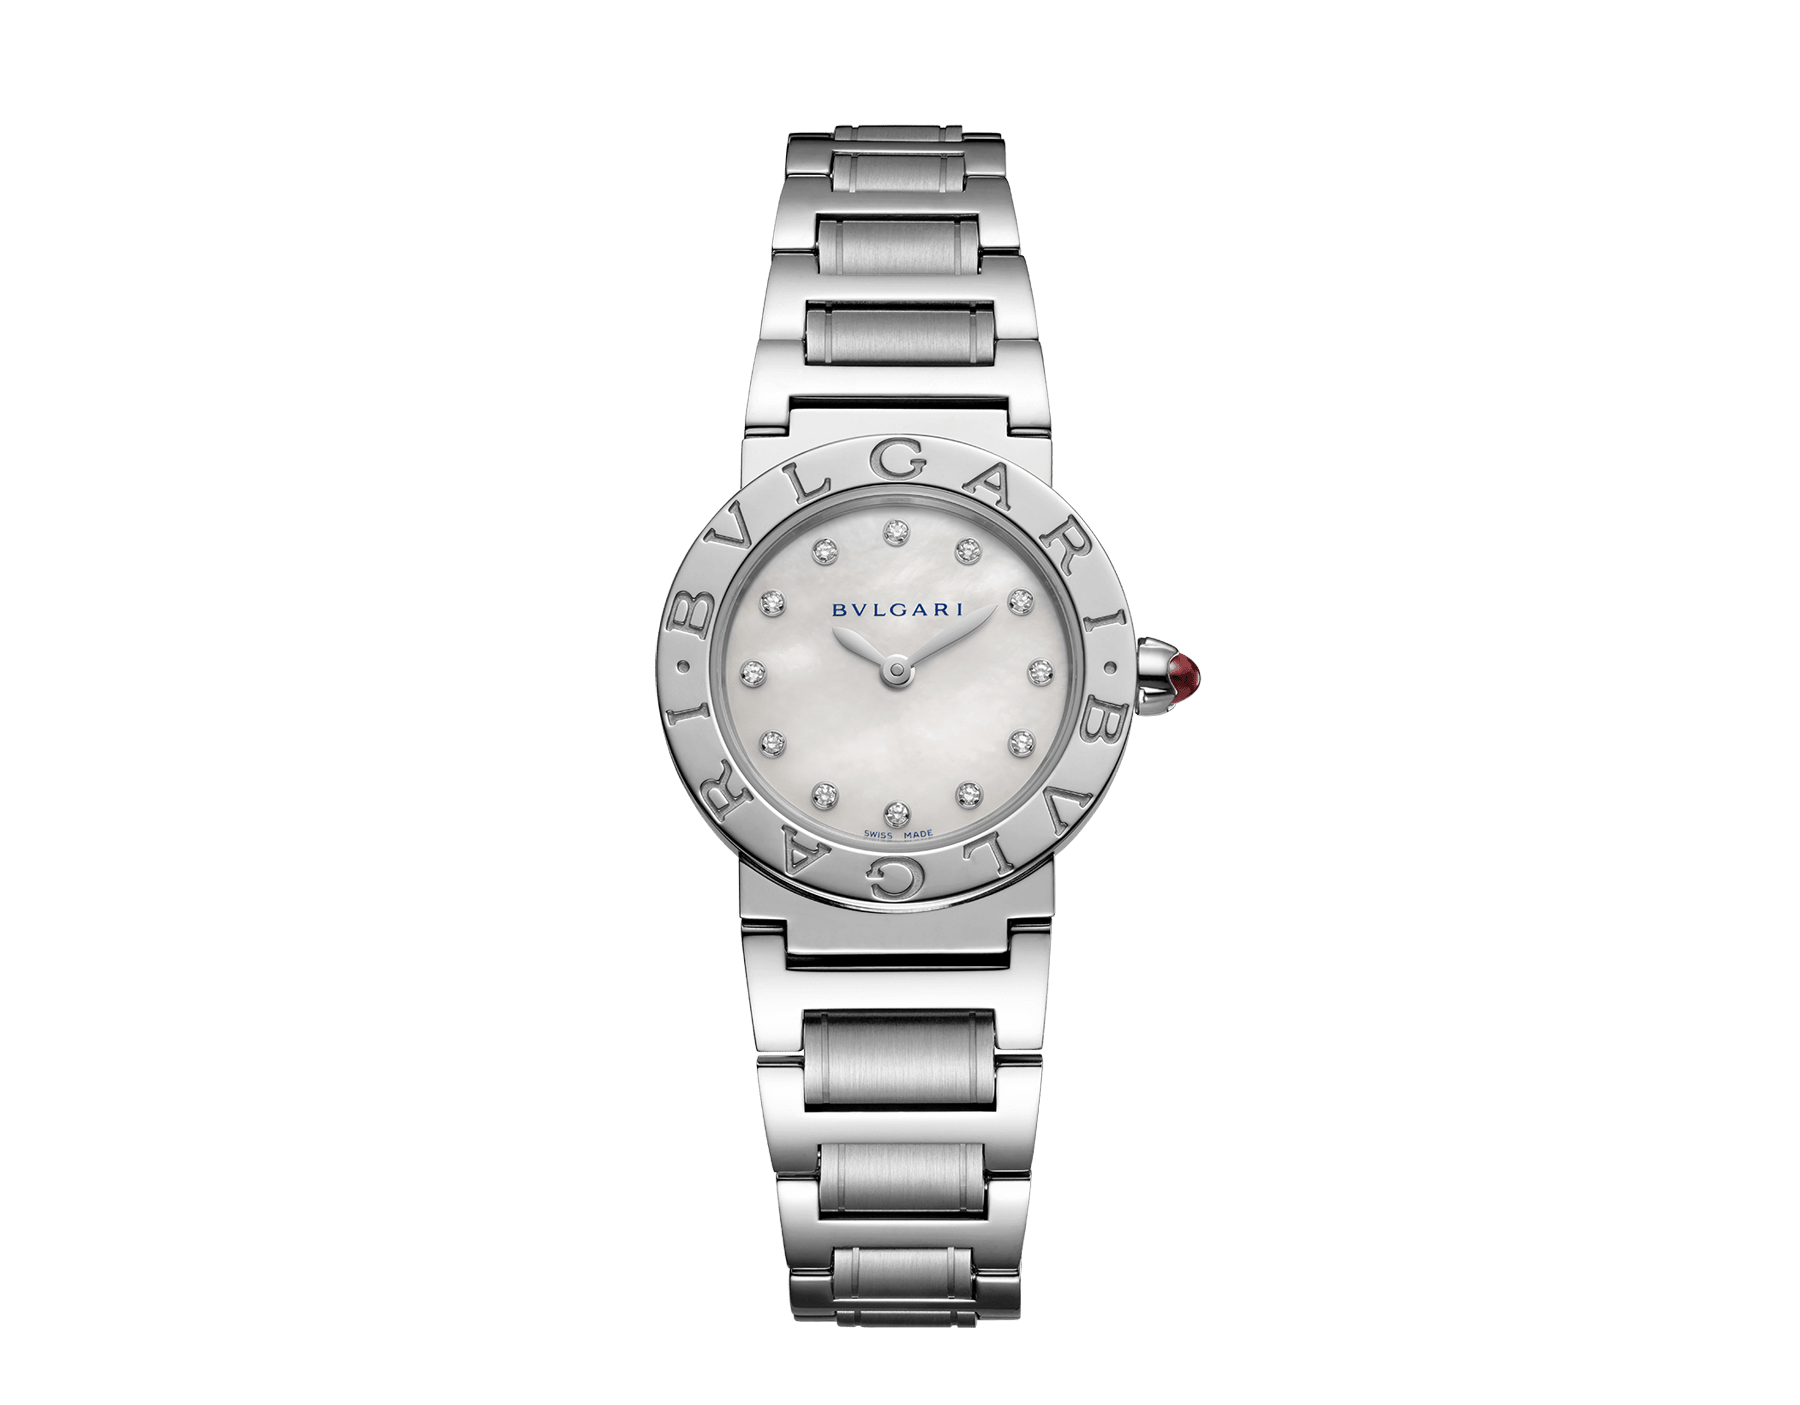 BVLGARI BVLGARI watch in stainless steel case and bracelet, with white mother-of-pearl dial and diamond indexes. Small model 101886 image 1